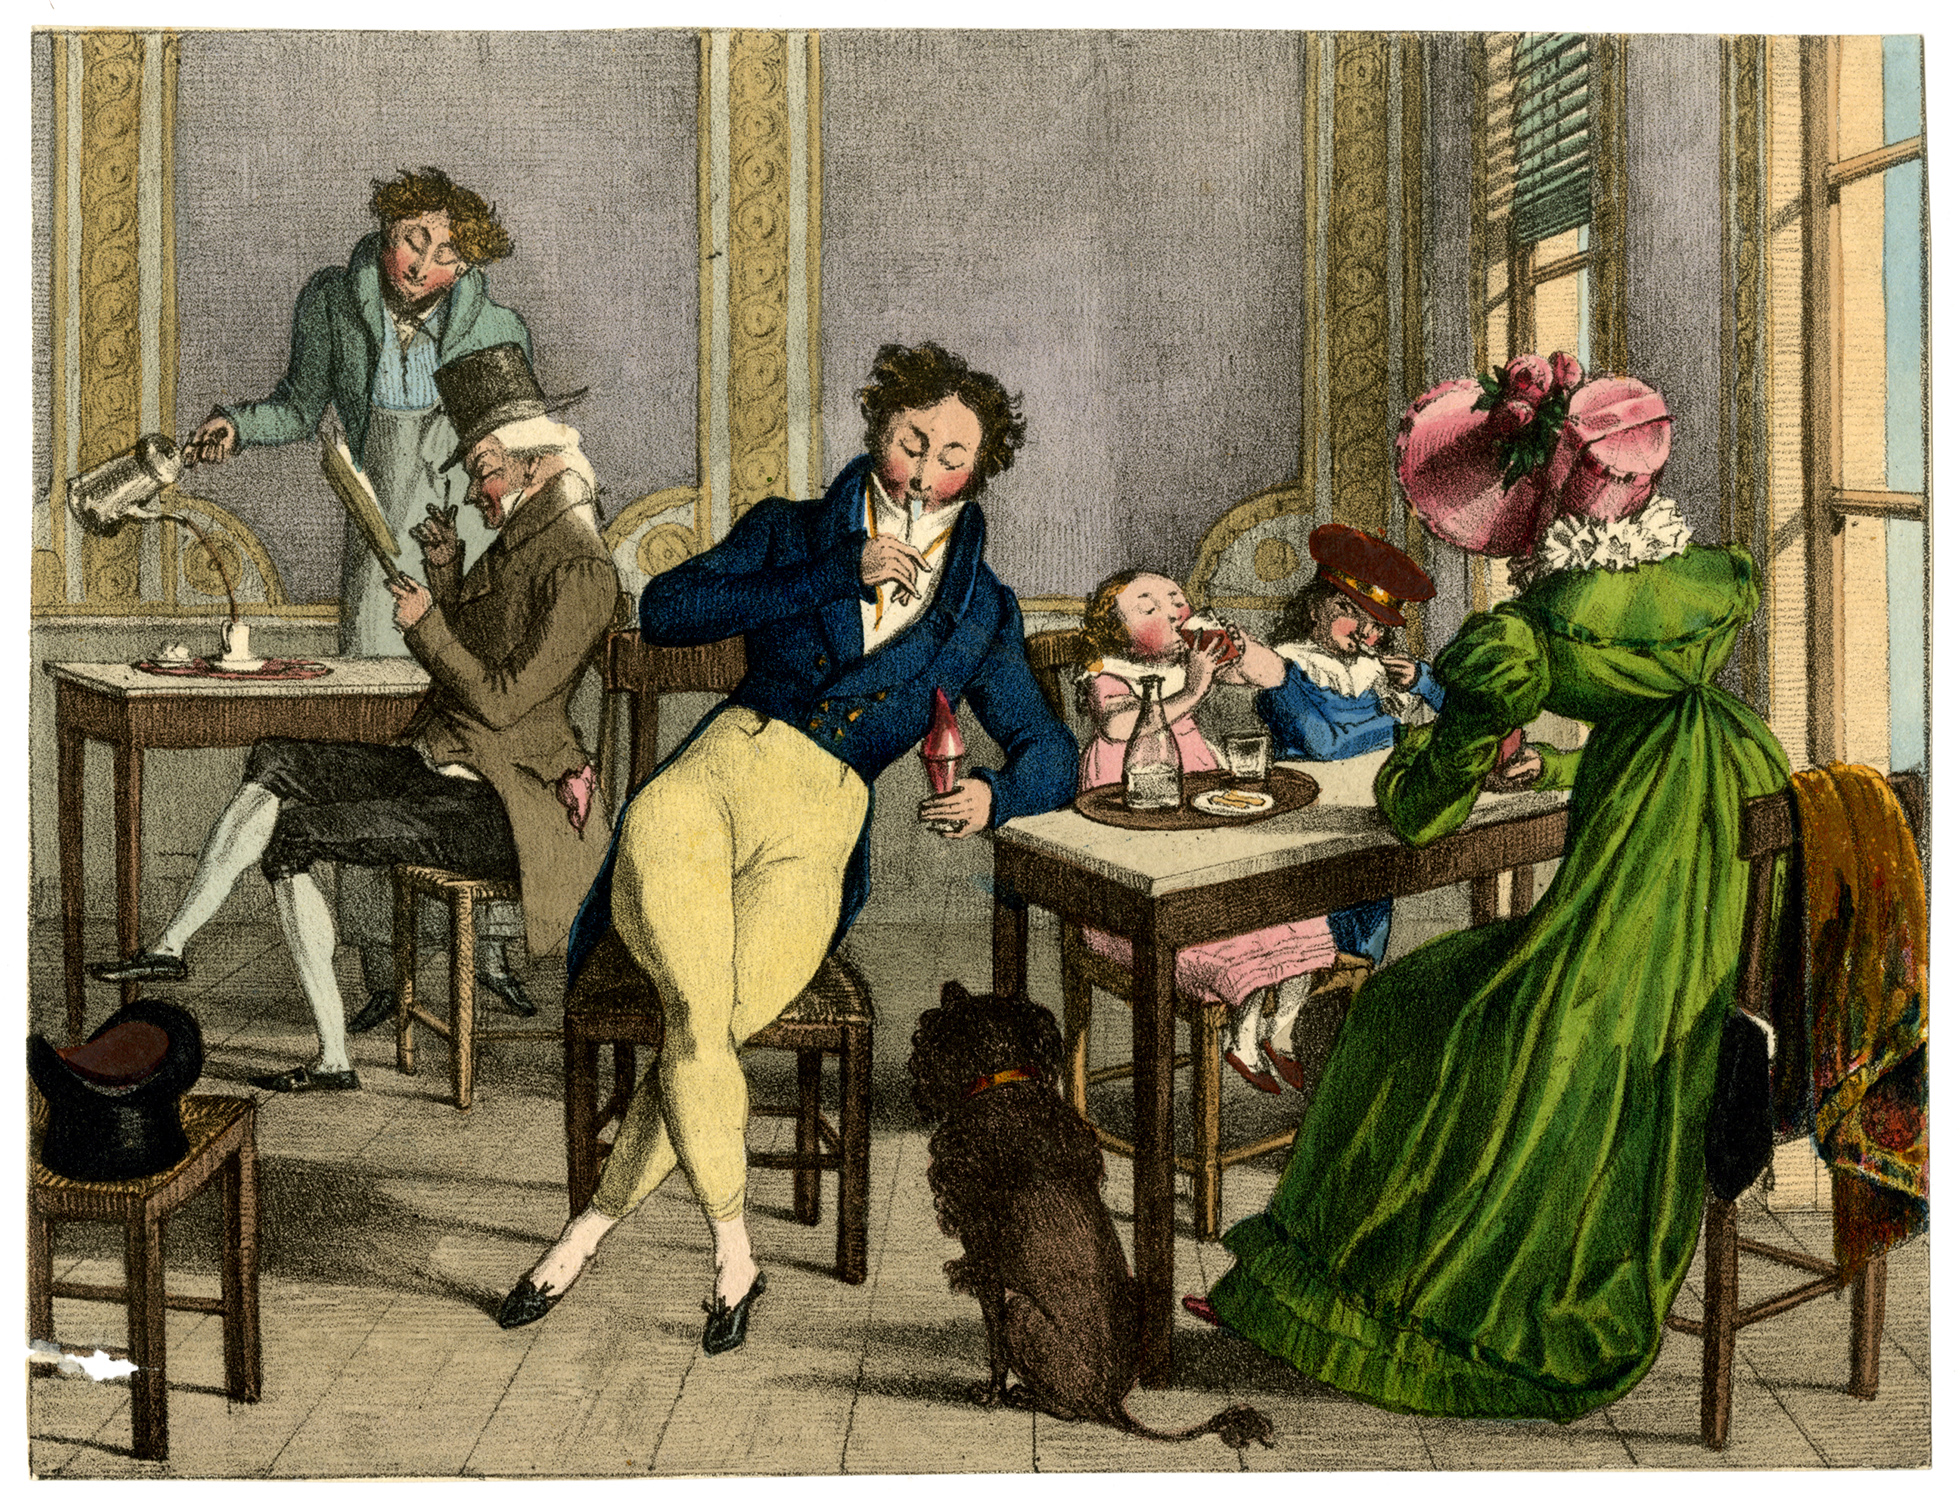 A colour print of the inside of a cafe from the 1820s. Well-dressed people sip coffee and eat ice cream from cups.